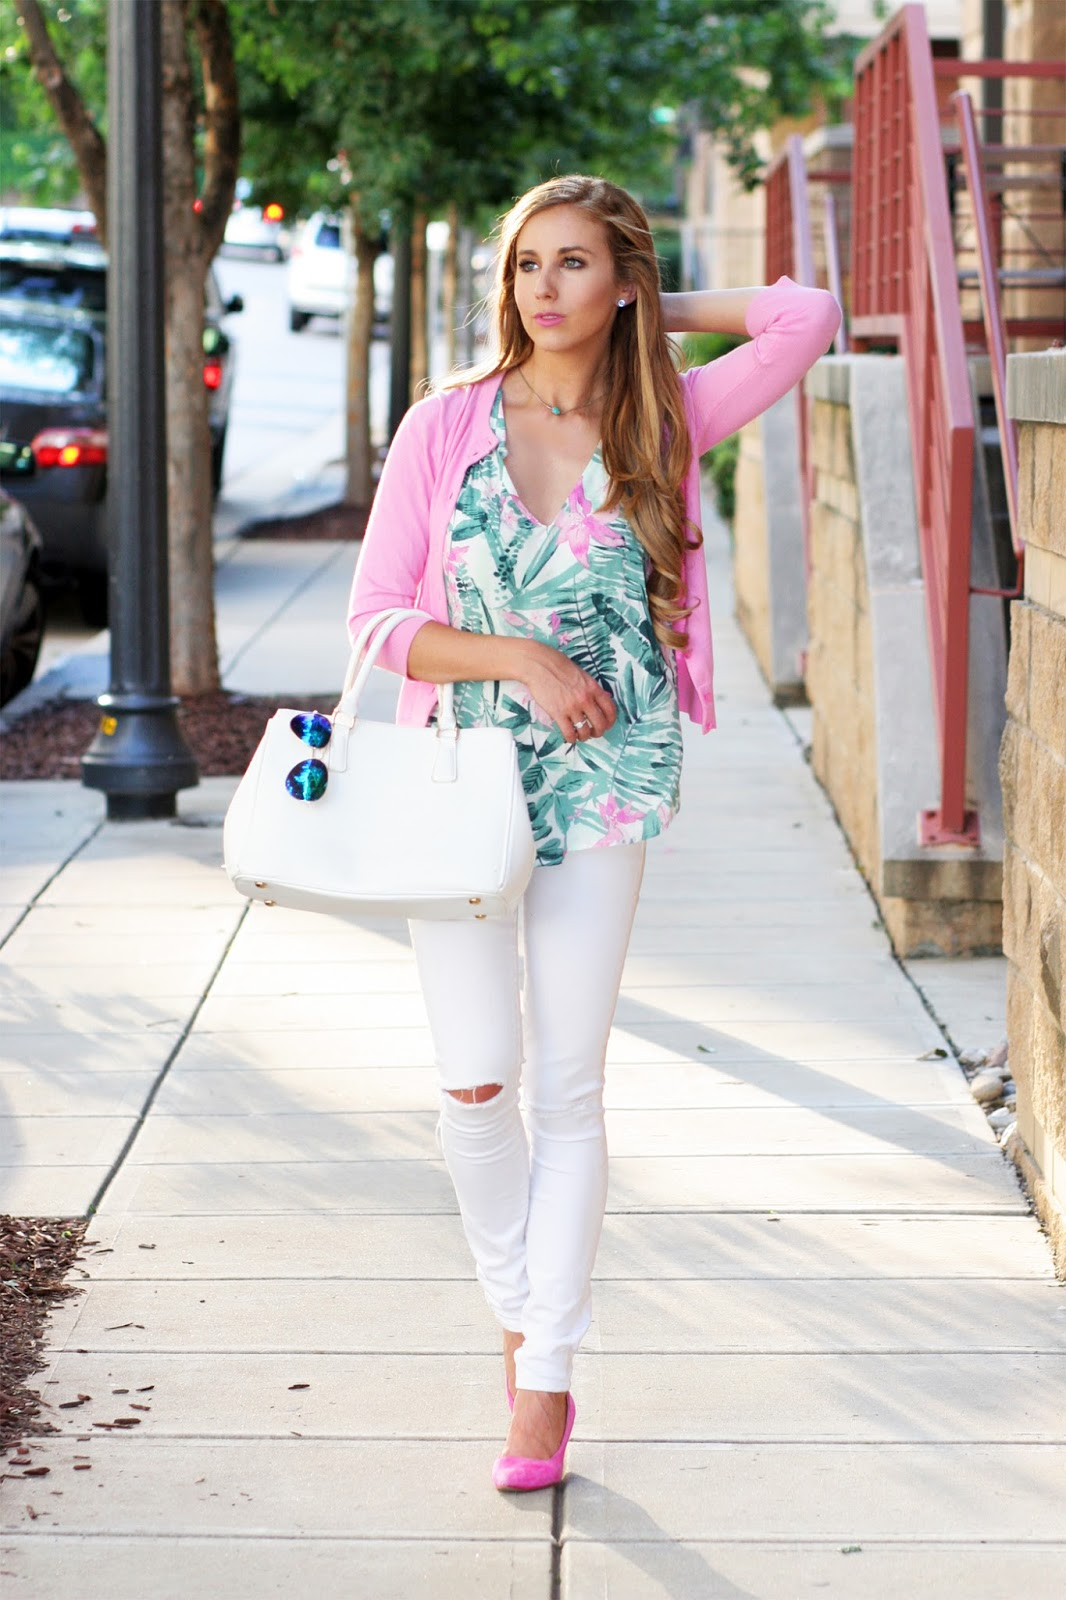 Palm-print-street-style-how-to-style-the-blog-societies